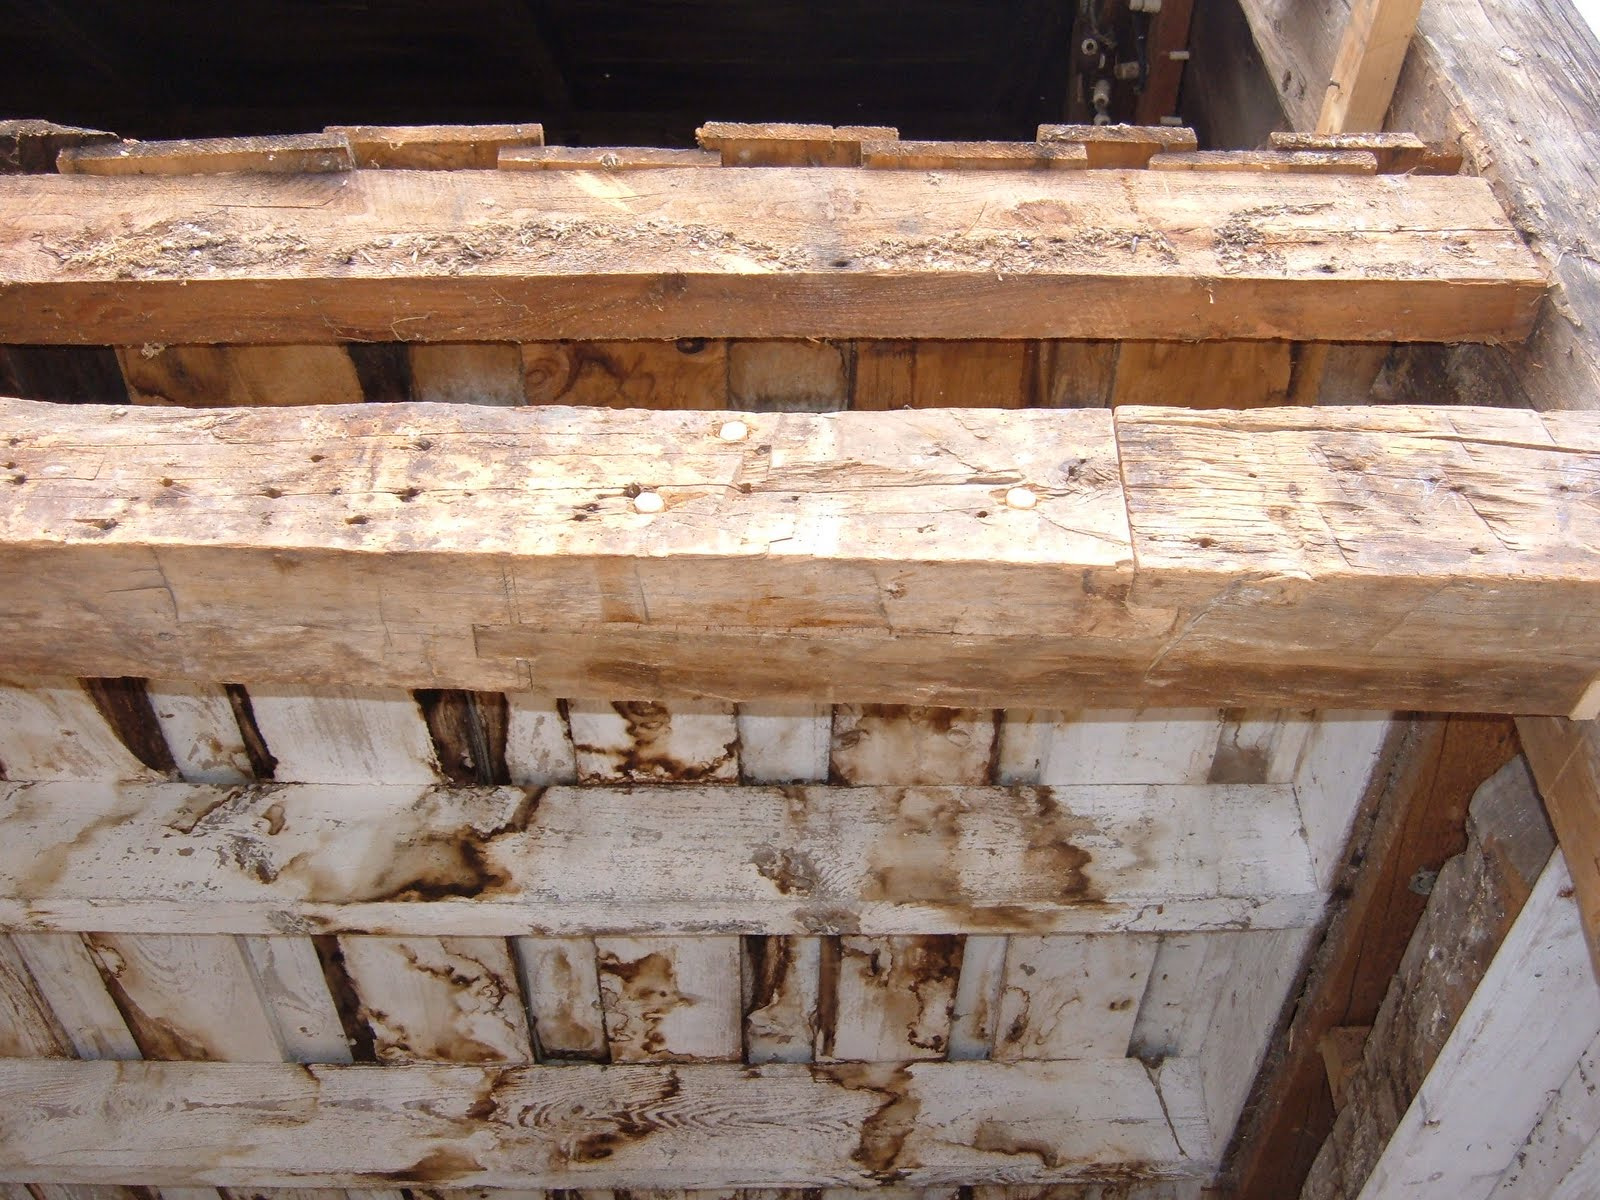 The right side of this girt was repaired using part of another girt that was not salvageable.